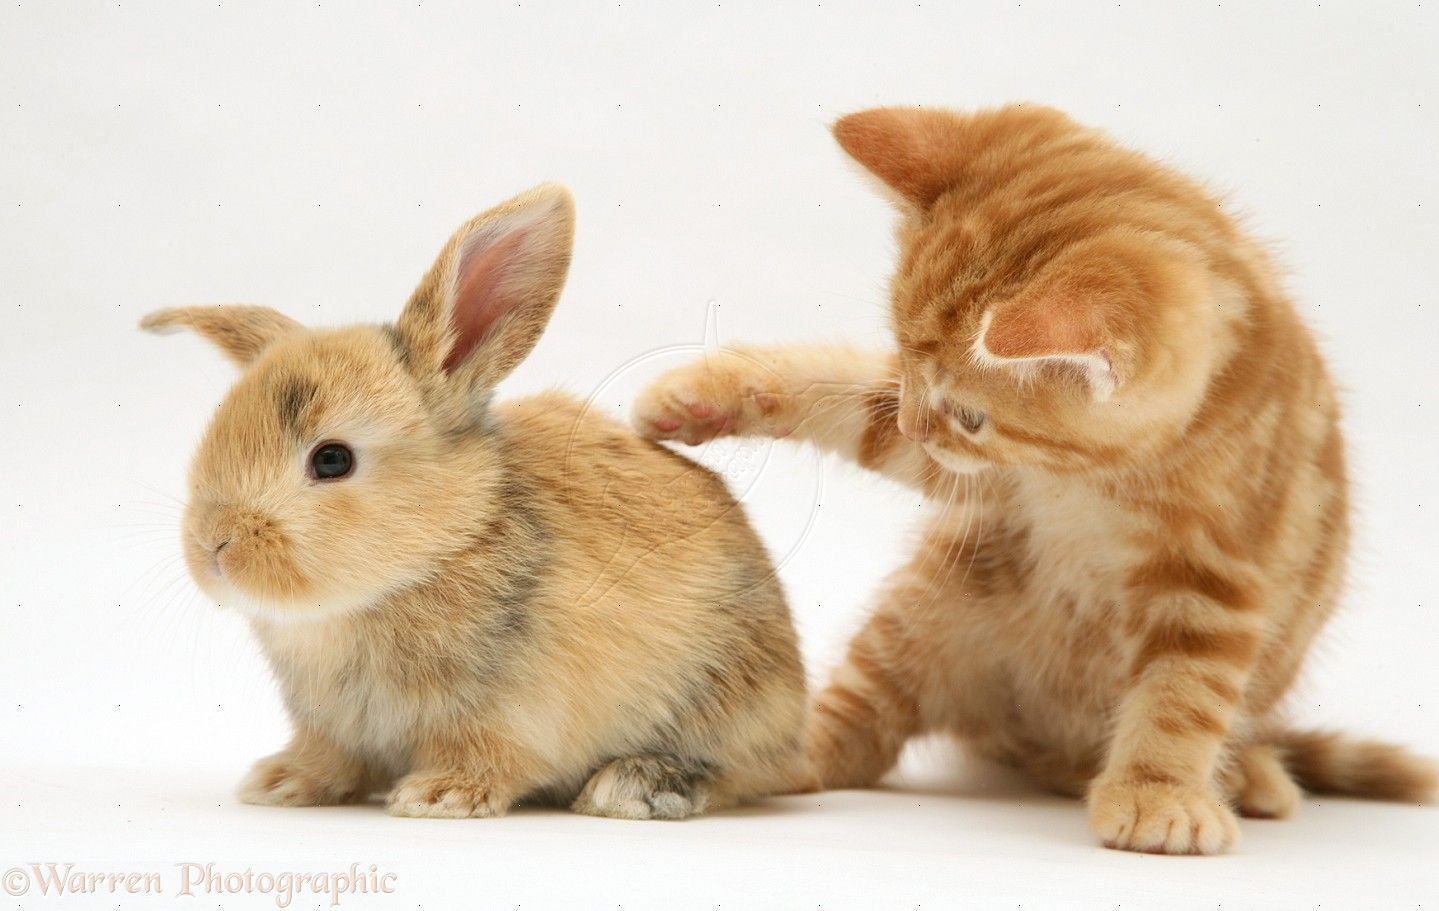 Kittens And Bunnies Wp22577 Red Tabby British Shorthair Kitten And Baby Sandy Lop Rabbit Cute Baby Bunnies Ginger Kitten Cute Animals